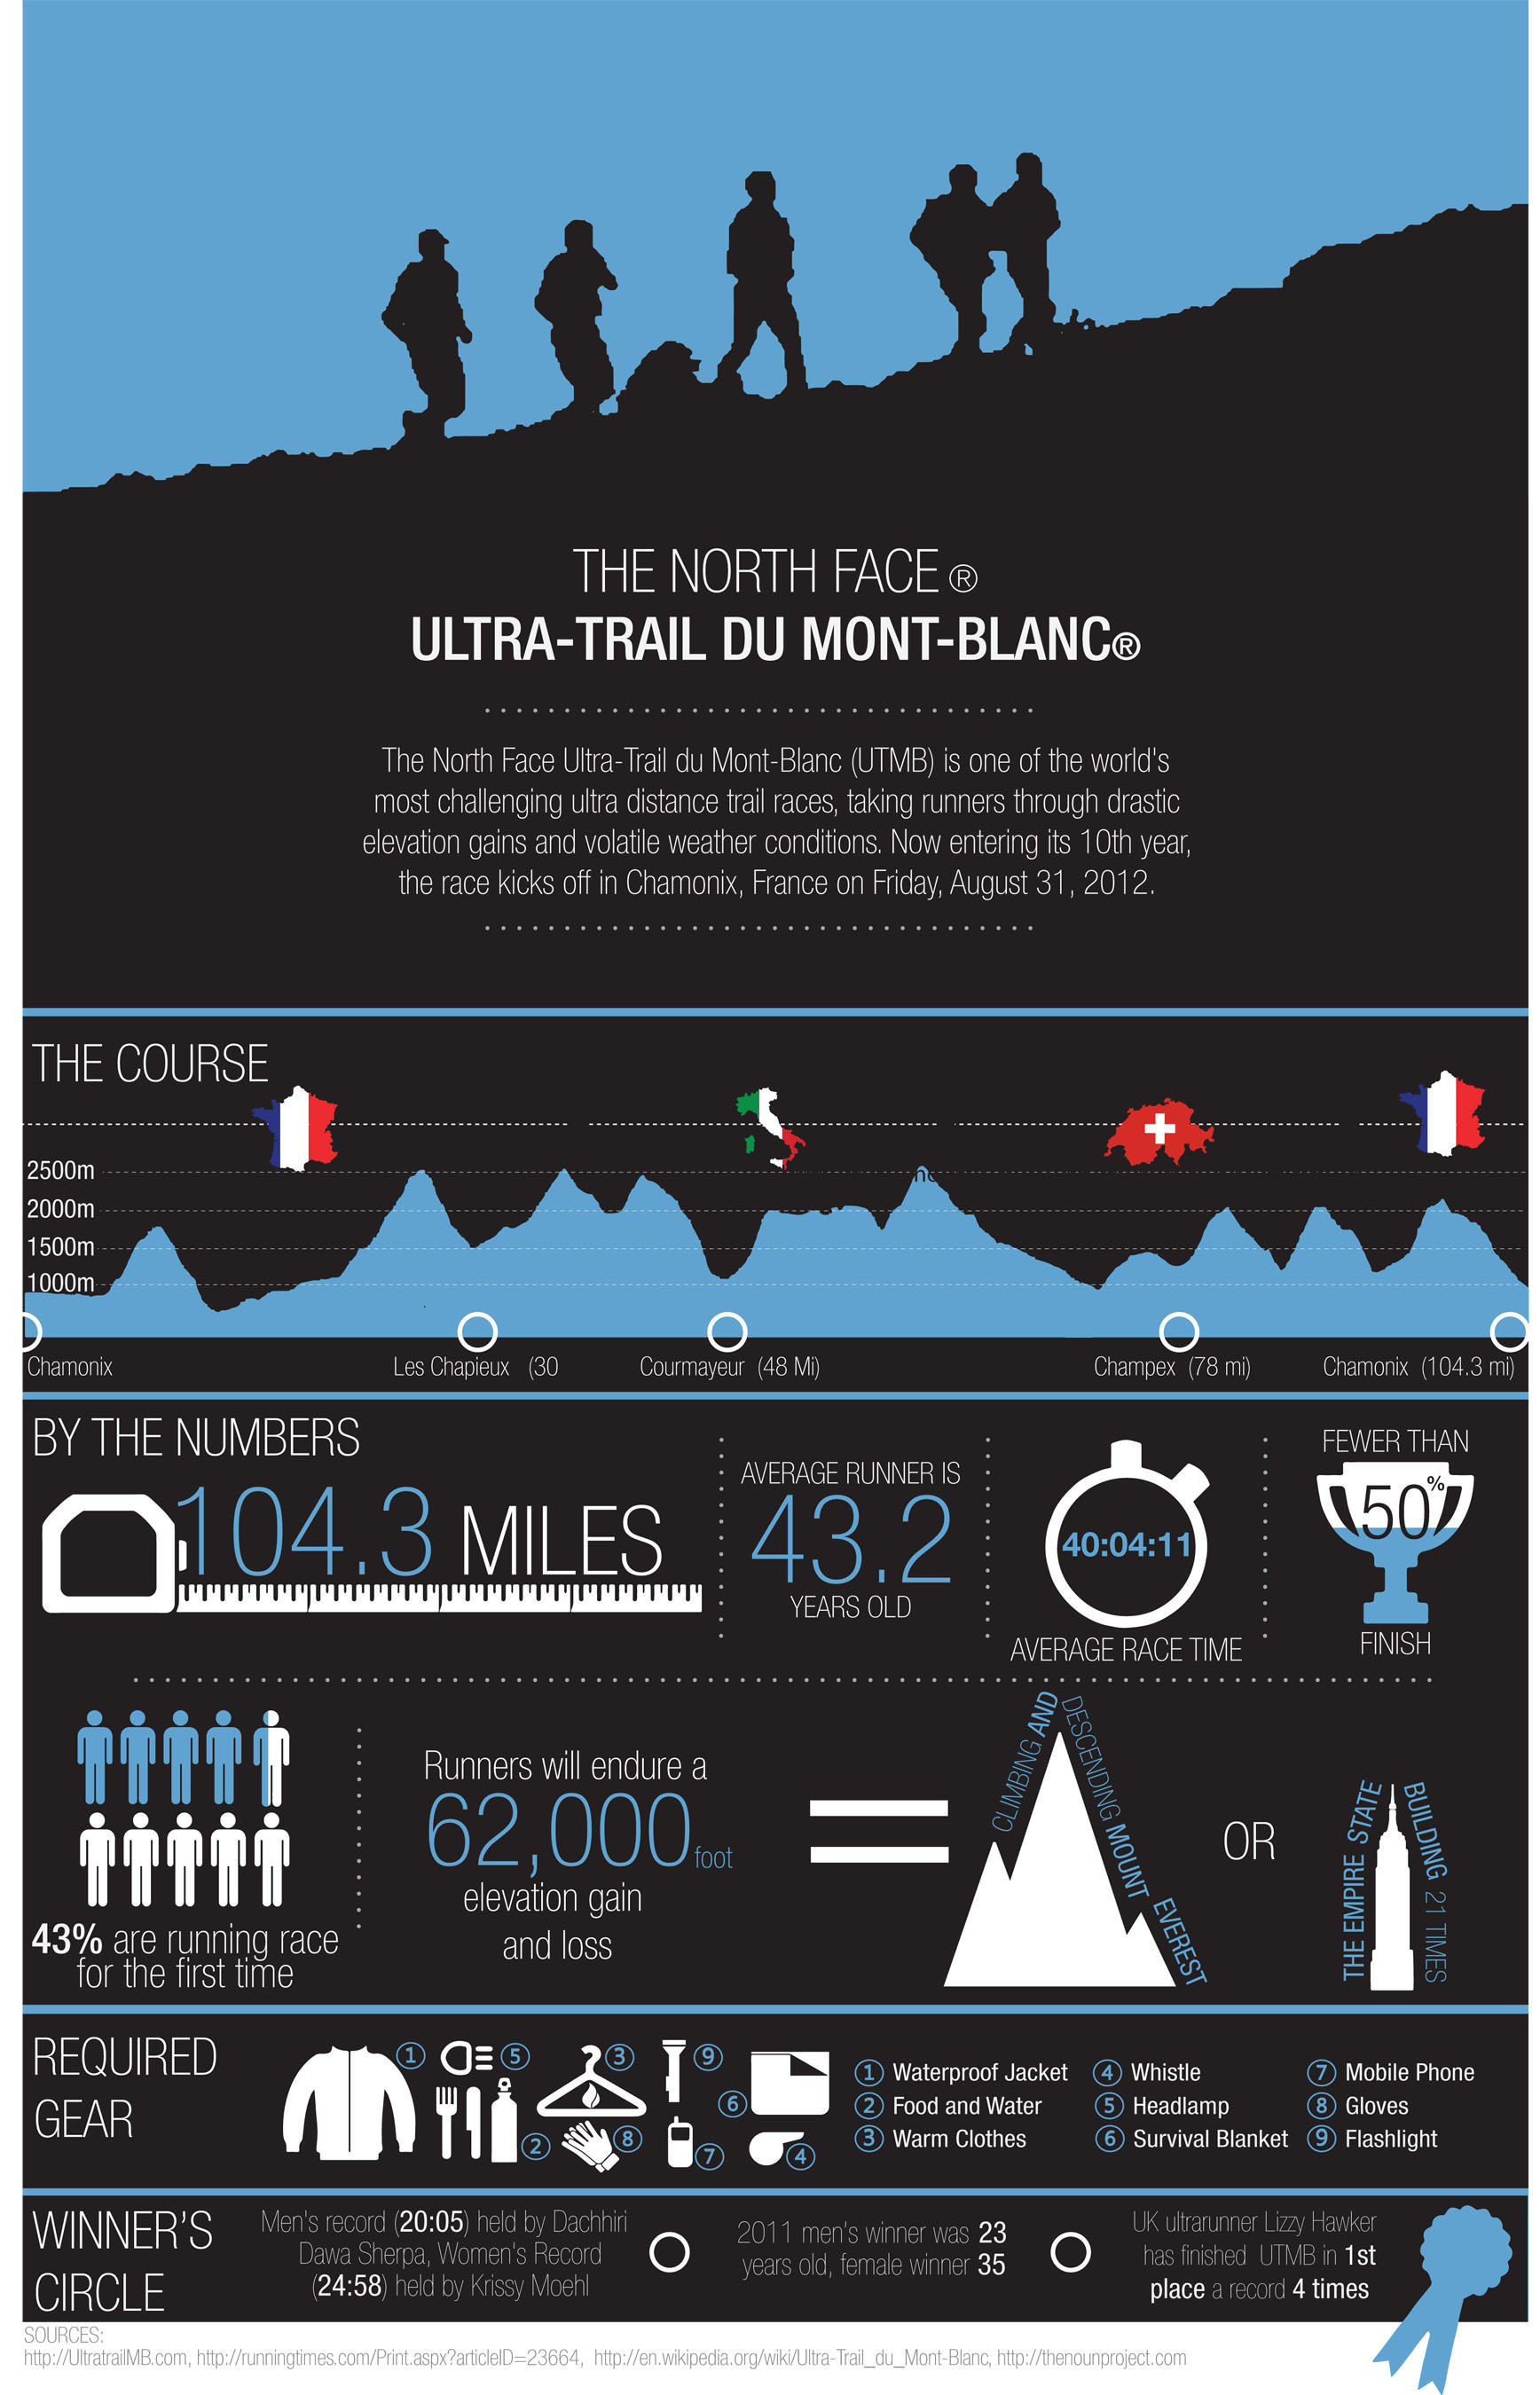 The North Face Ultra-Trail du Mont Blanc Celebrates its Tenth Year With the First Ever Live Race